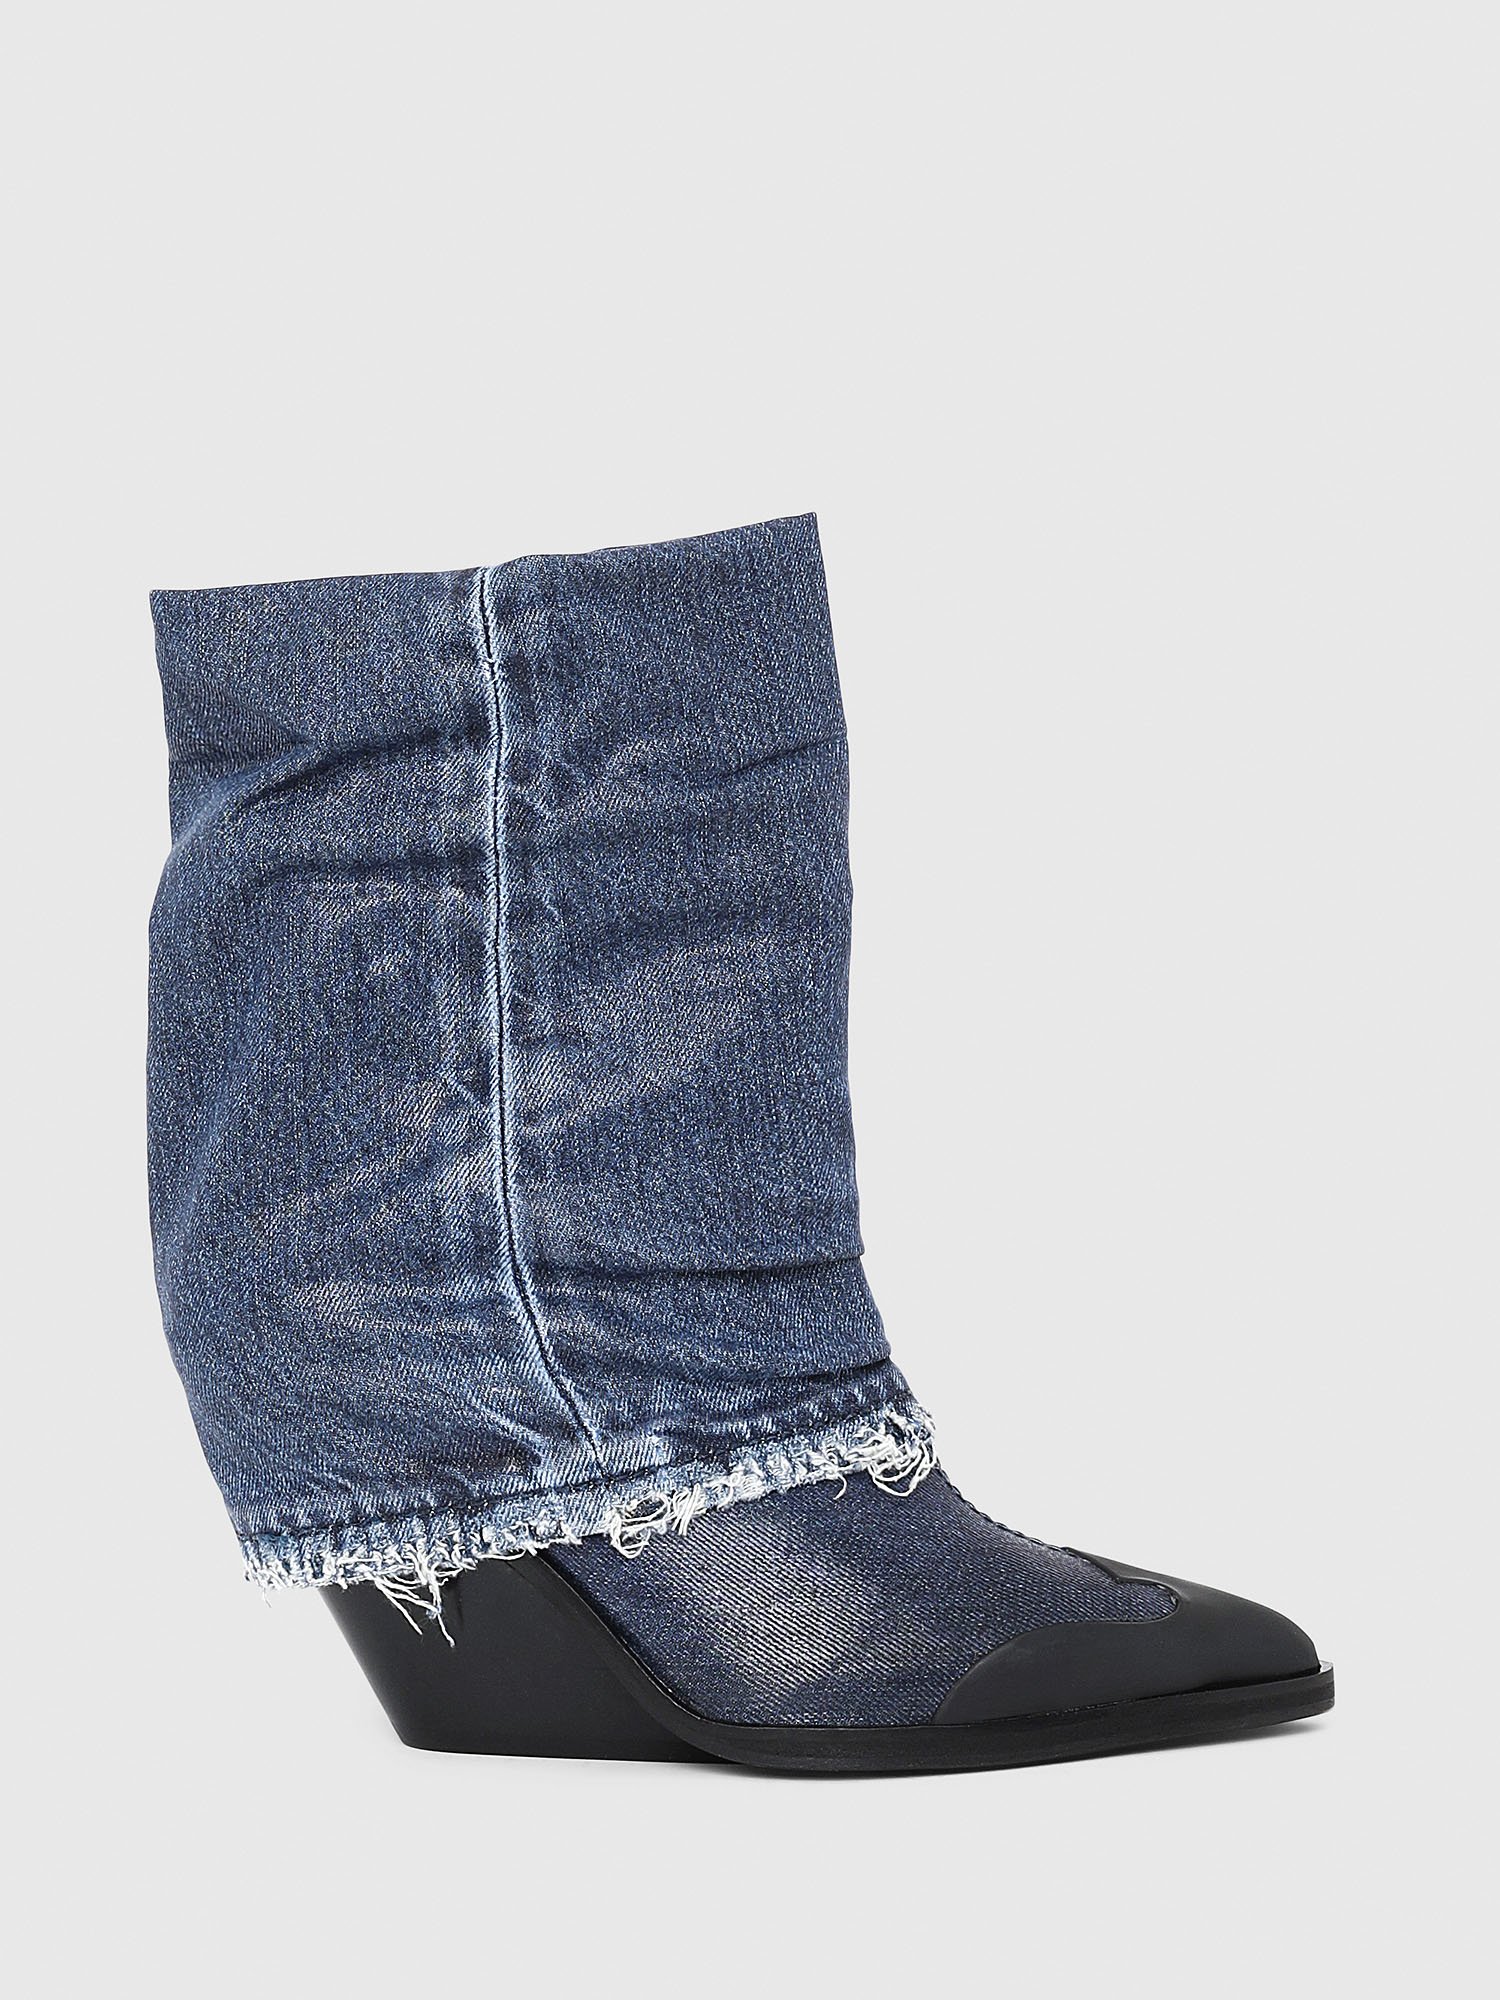 Diesel - D-WEST MB,  - Ankle Boots - Image 1